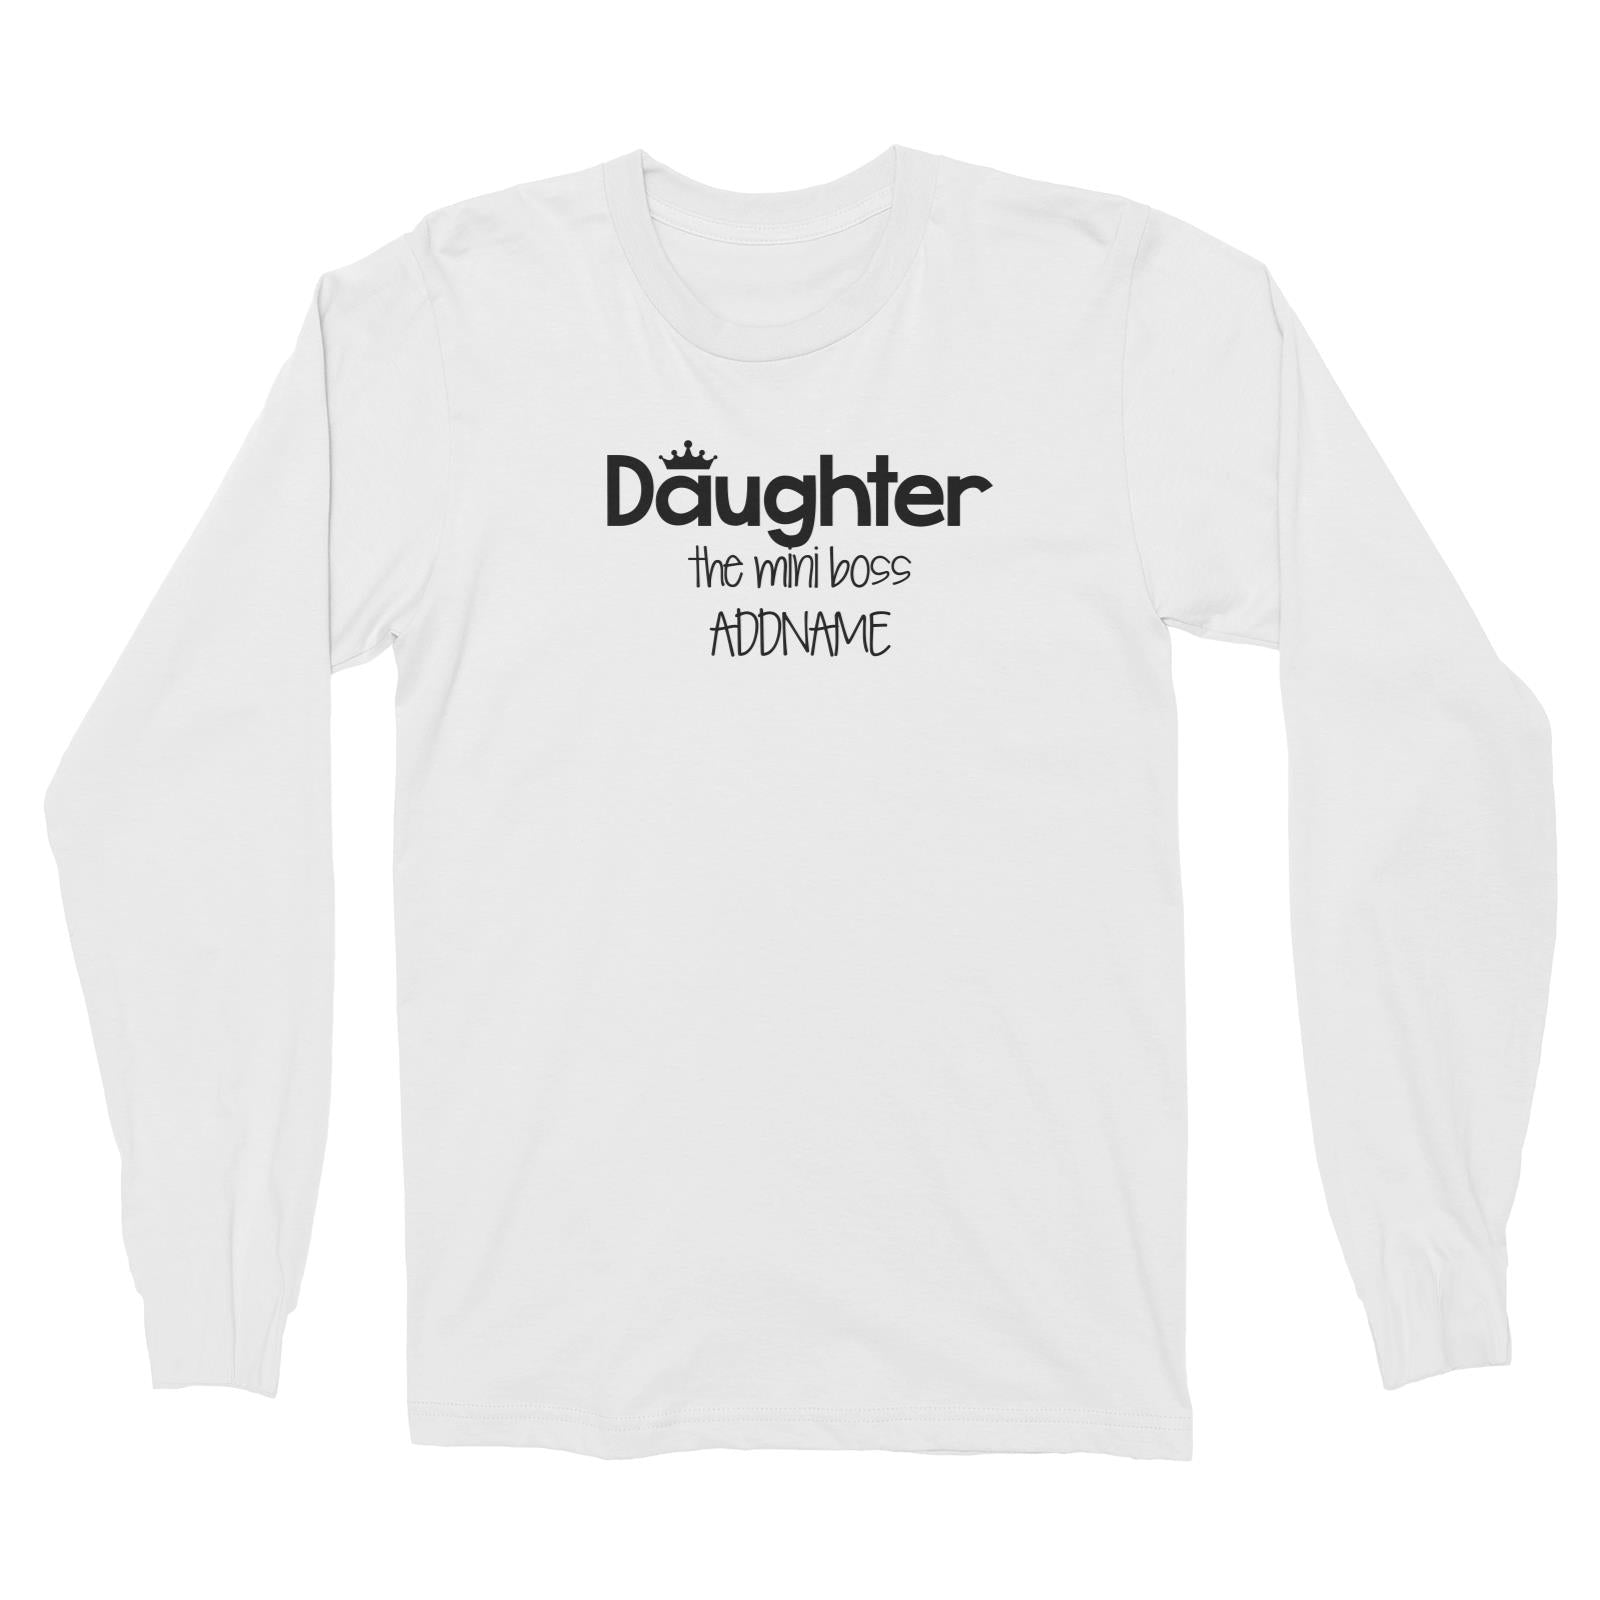 Daughter with Tiara The Mini Boss Long Sleeve Unisex T-Shirt